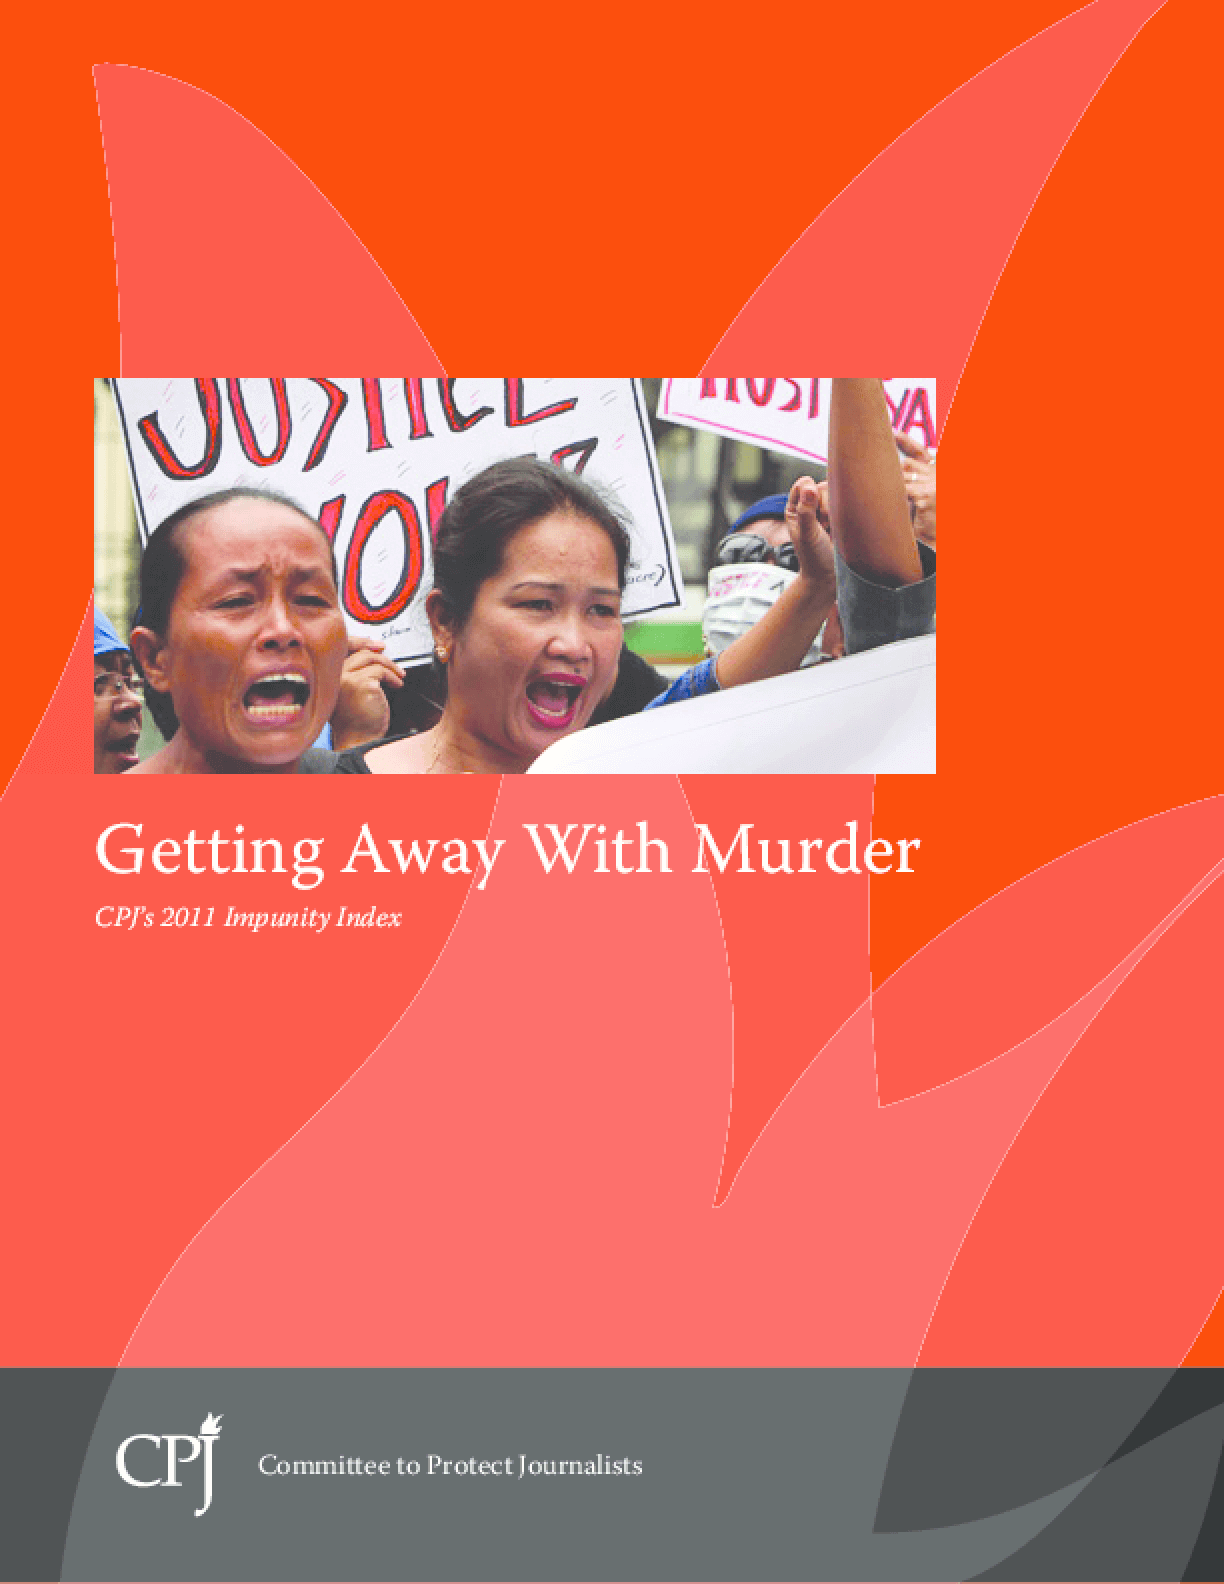 Getting Away With Murder: CPJ's 2011 Impunity Index